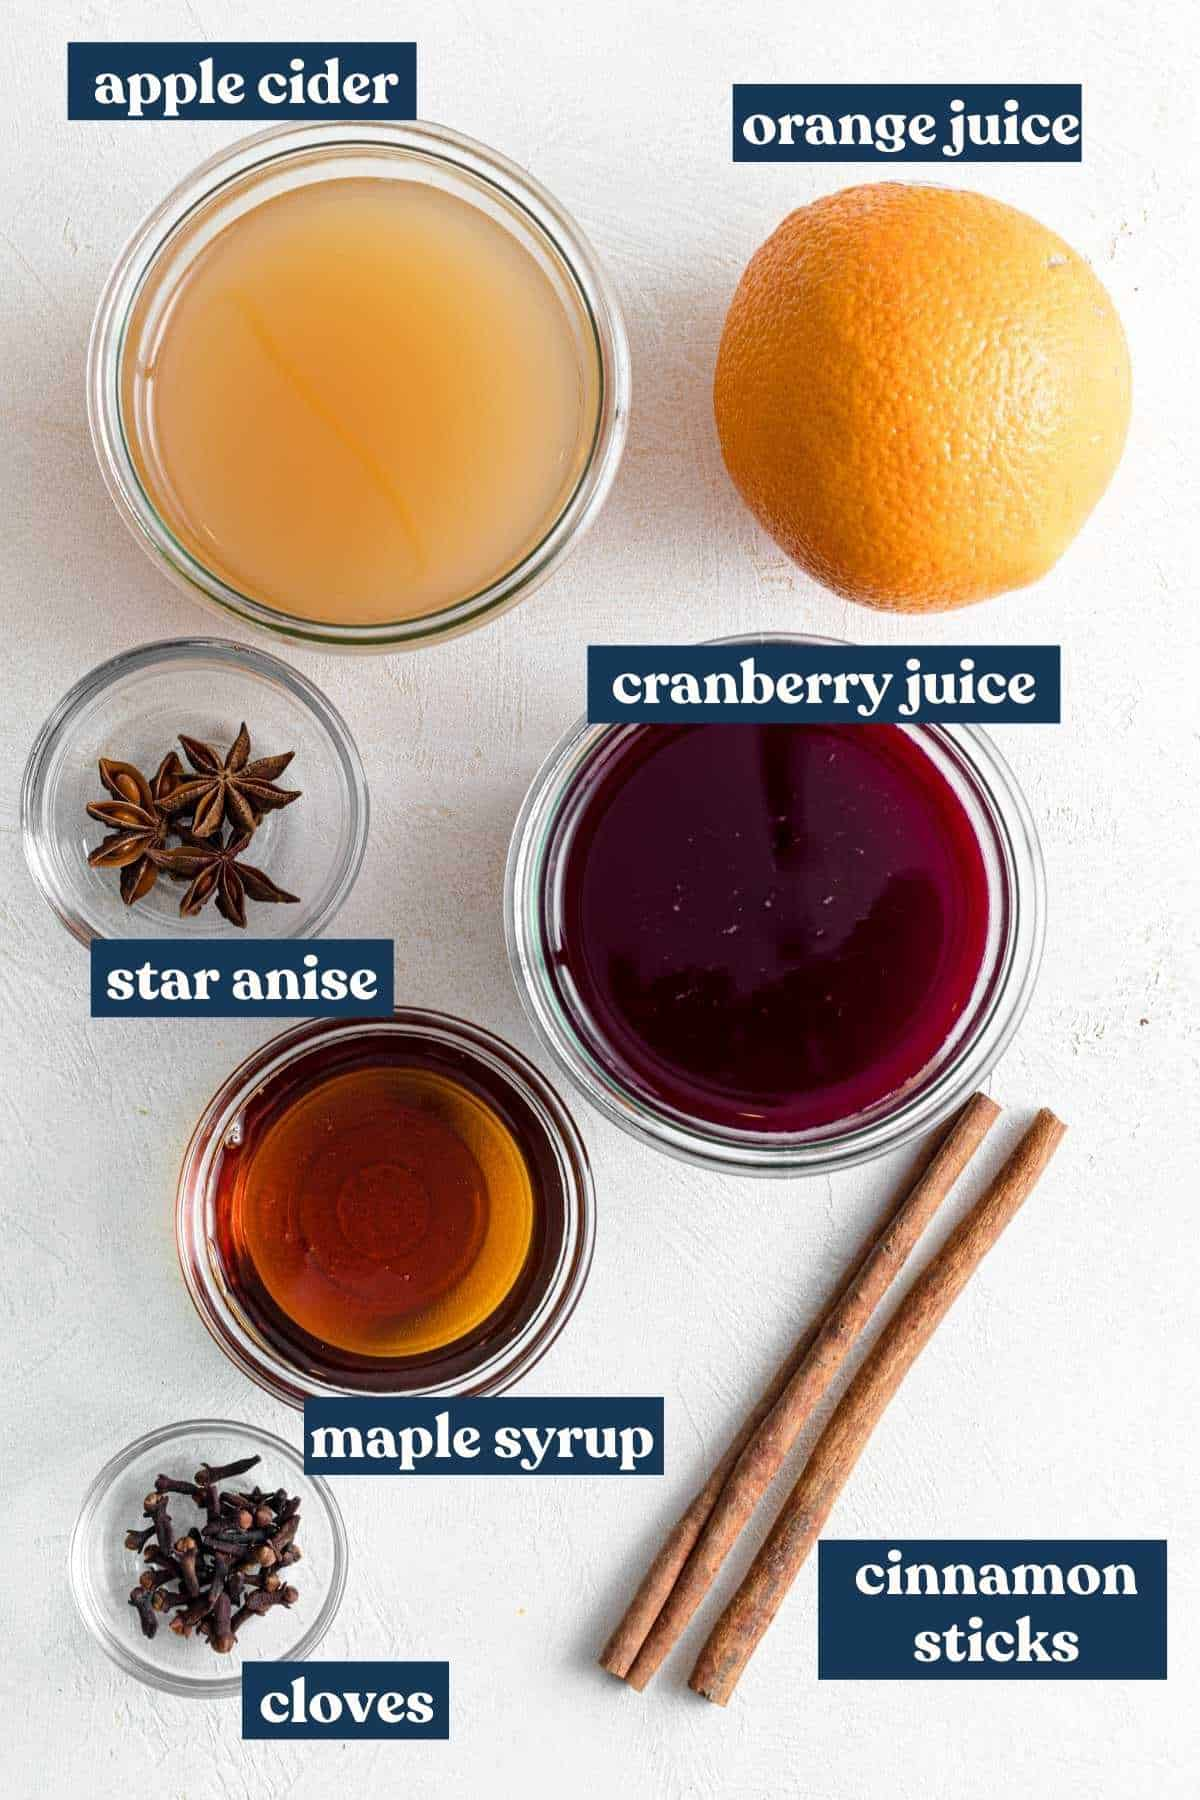 Ingredients necessary for non-alcoholic mulled wine recipe with labels.